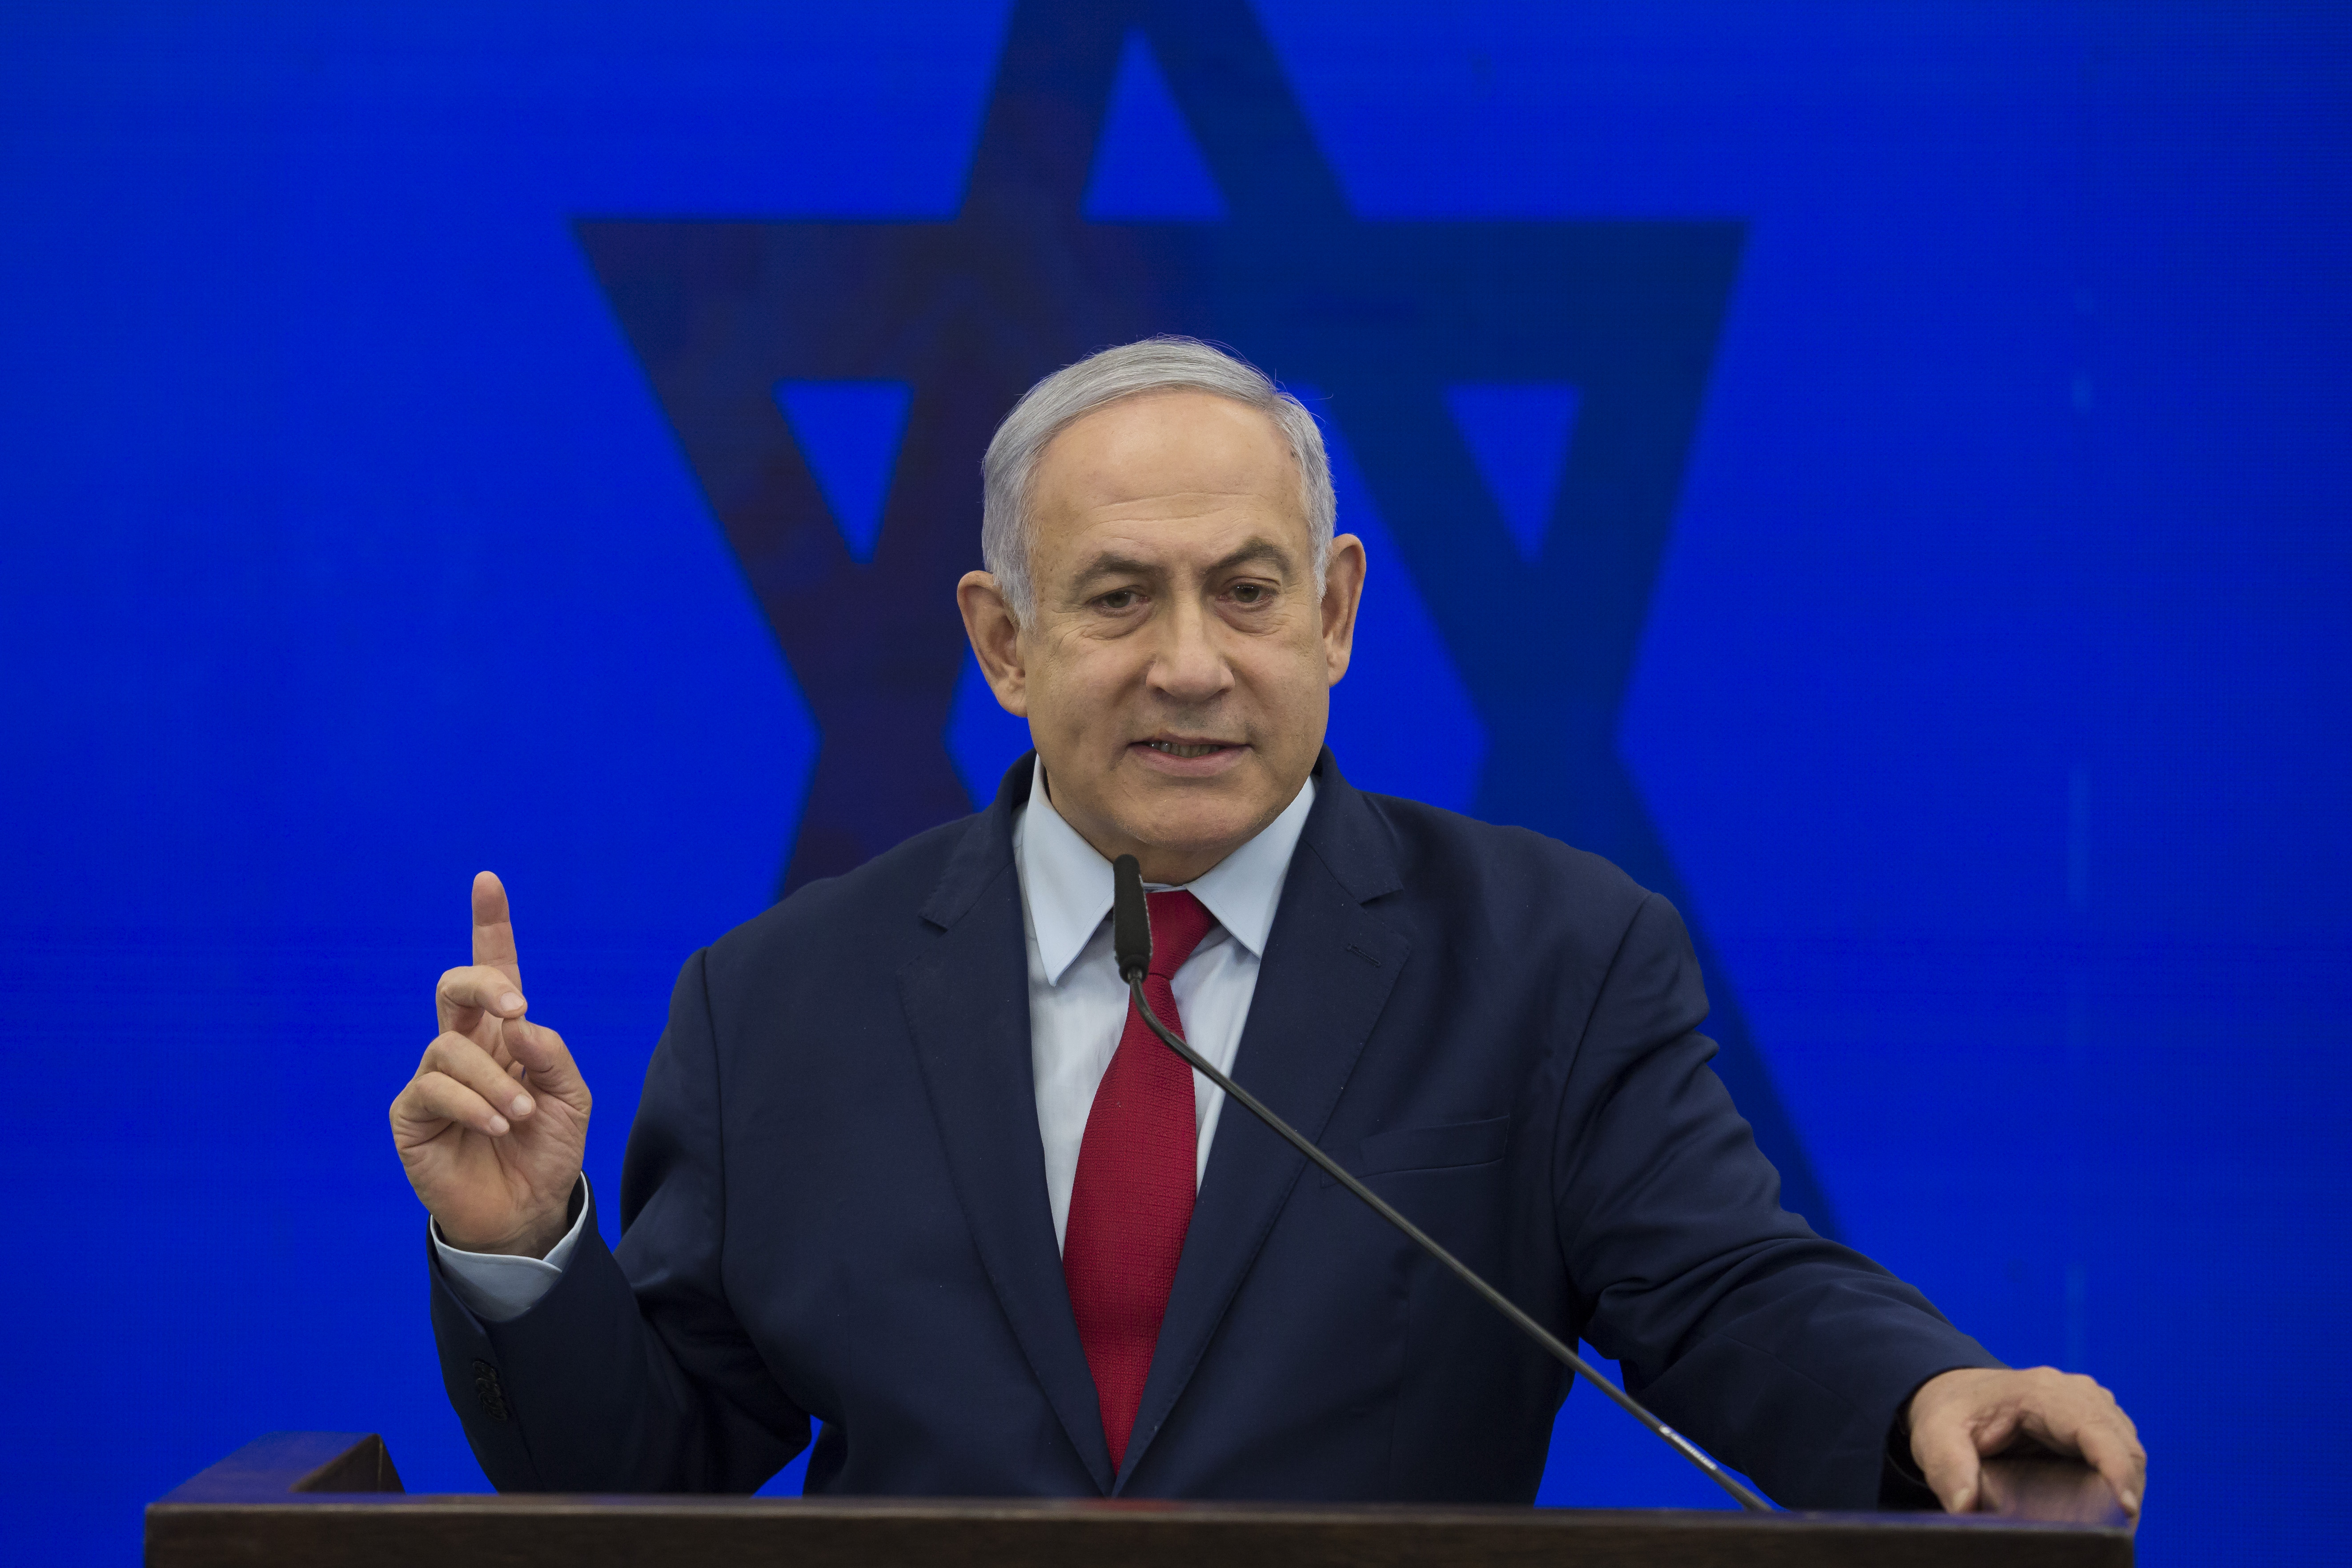 Israeli Prime Minister Benjamin Netanyahu standing at a podium backed by a Jewish star and holding up a finger.